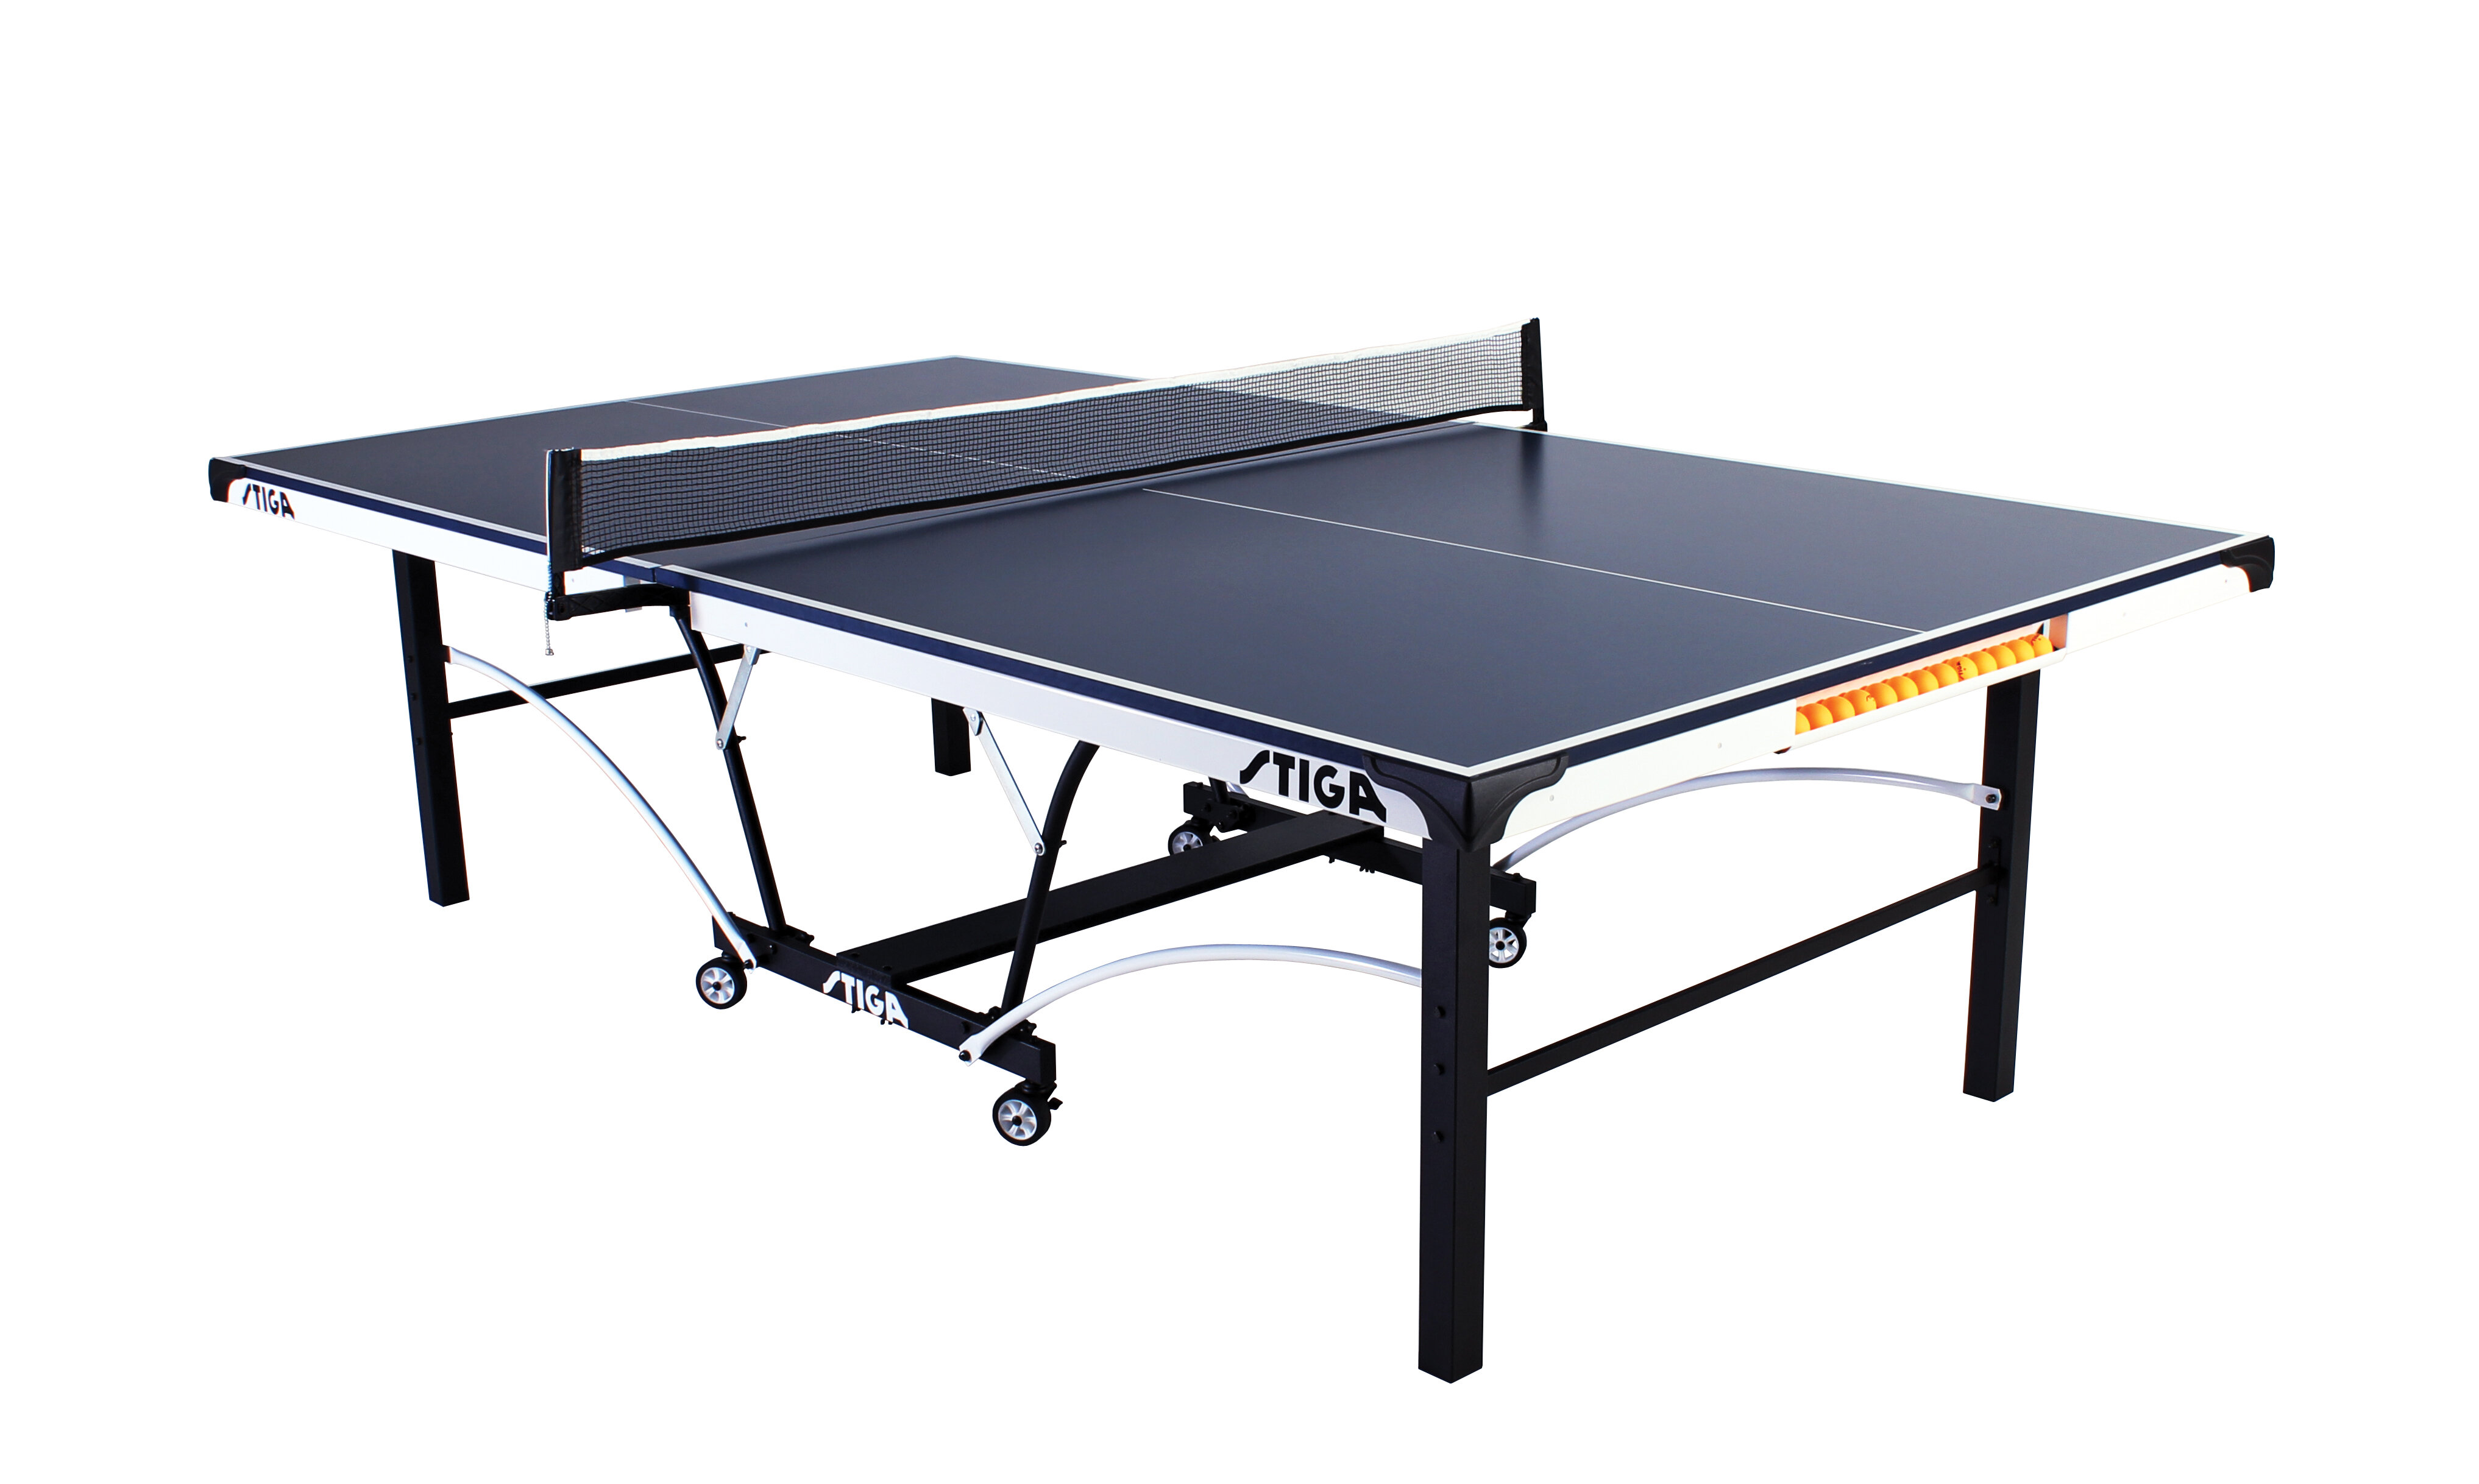 Stiga 185 Regulation Size Foldable Indoor Table Tennis Table 19mm Thick Reviews Wayfair